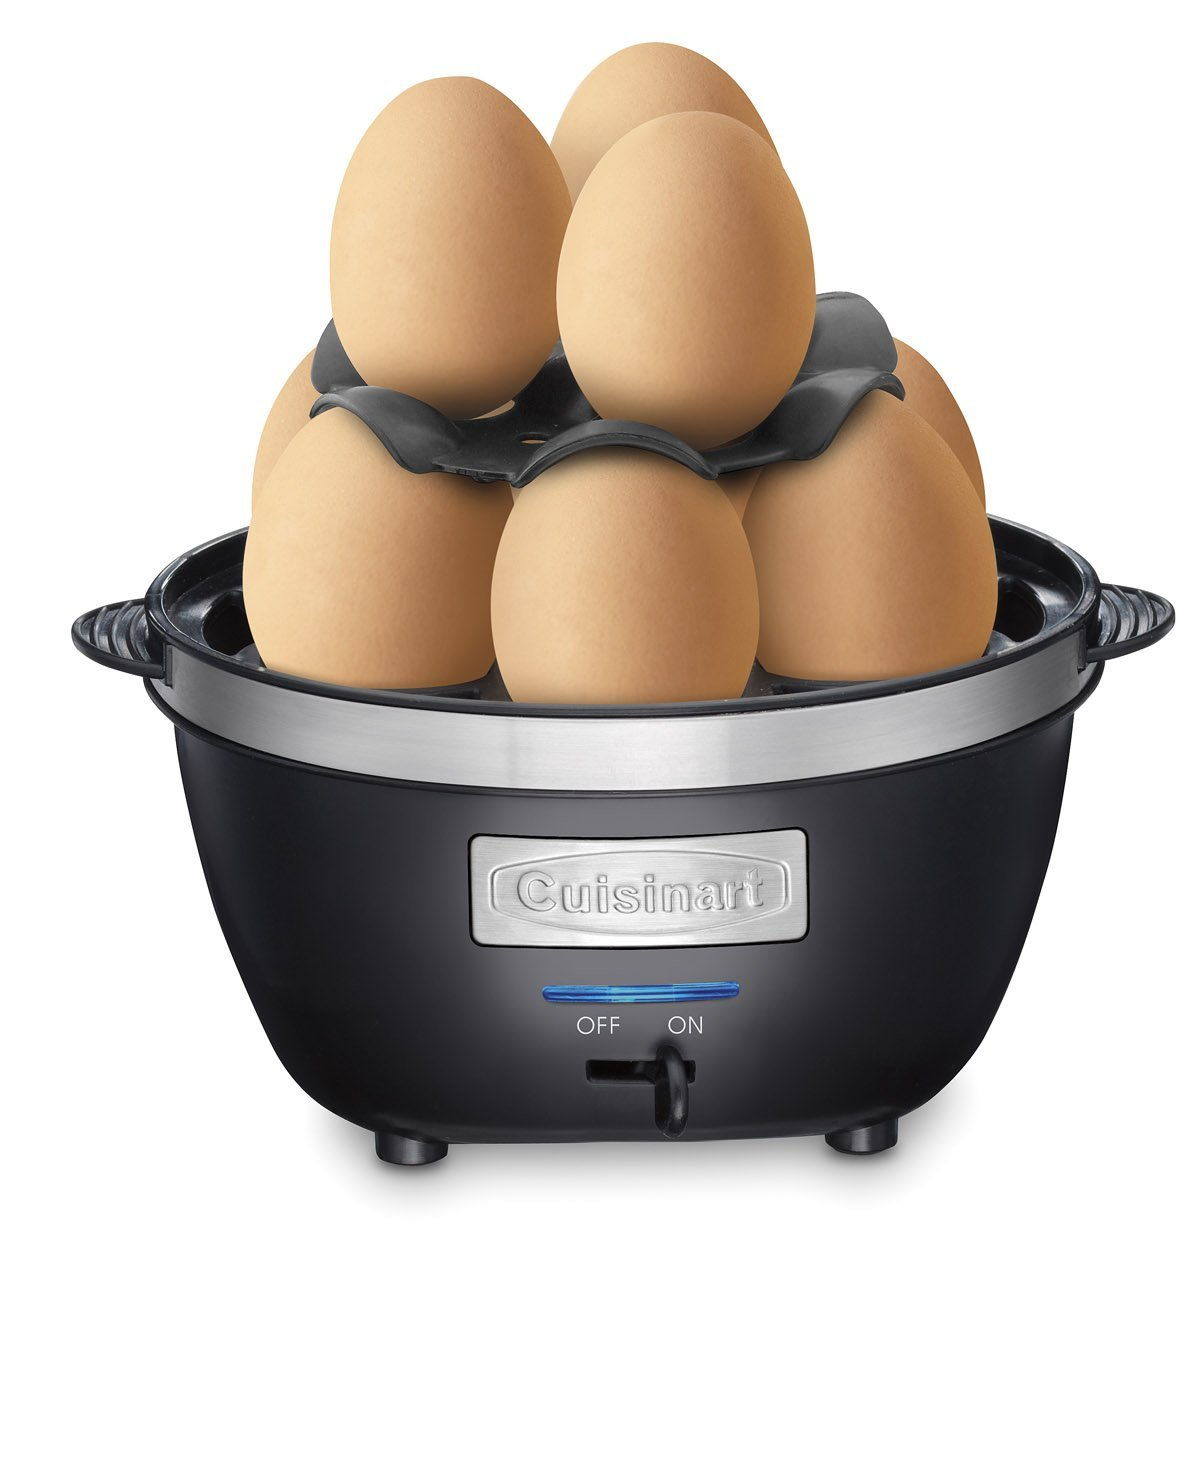 Cuisinart CEC-10 Egg Central Egg Cooker Review